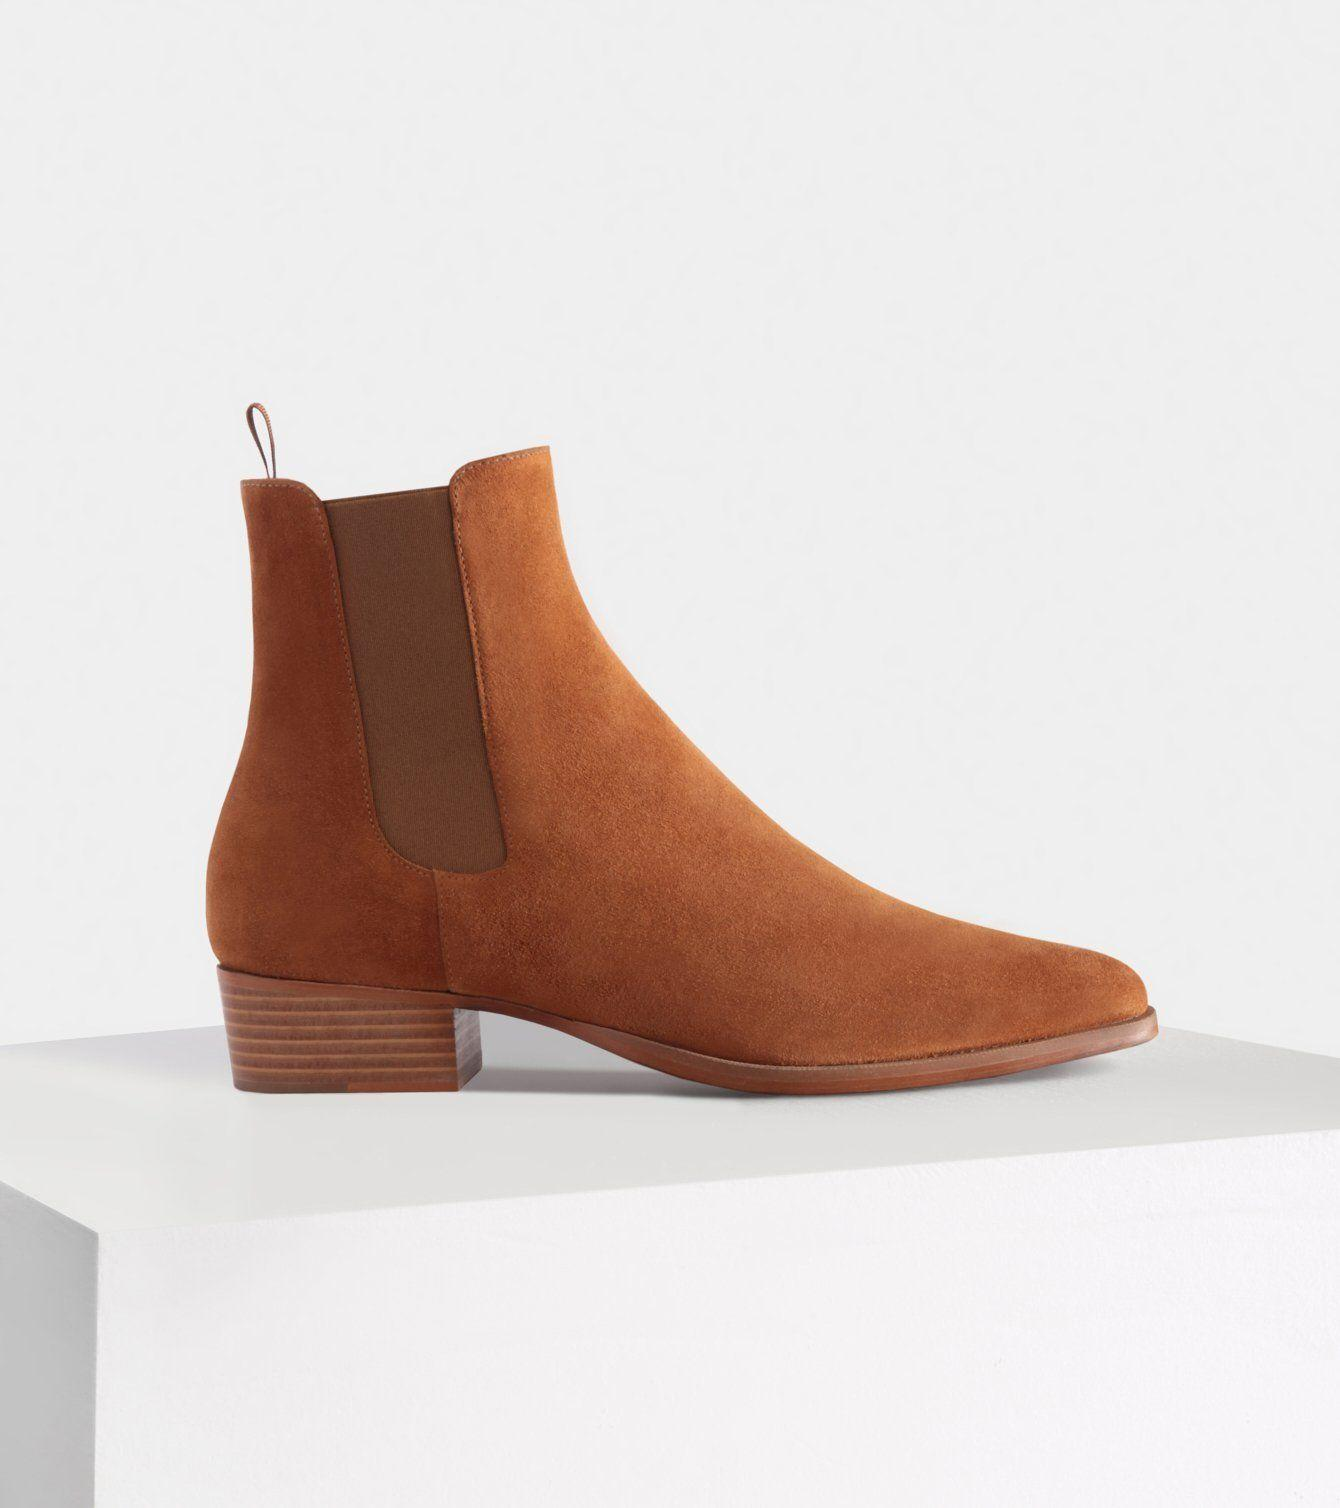 """<p>jackerwin.com</p><p><strong>$225.00</strong></p><p><a href=""""https://www.jackerwin.com/collections/womens-boots/products/robie?variant=30334936547414"""" rel=""""nofollow noopener"""" target=""""_blank"""" data-ylk=""""slk:Shop Now"""" class=""""link rapid-noclick-resp"""">Shop Now</a></p>"""